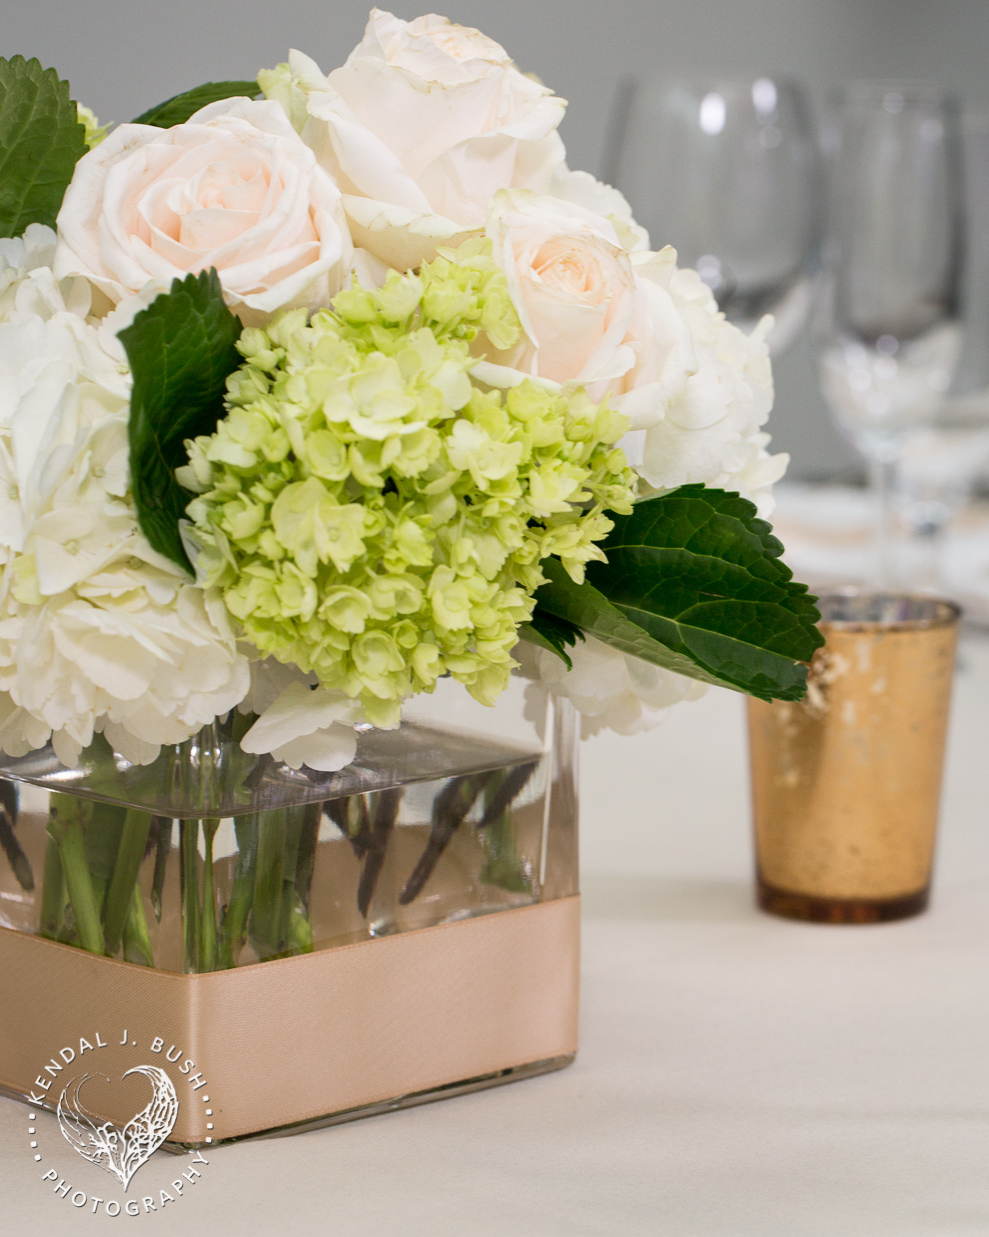 White hydrangea studded with cream vendela roses and mini green hydrangea.  The vase is wrapped in a gold satin ribbon.  Image by Kendal J. Bush Photography.